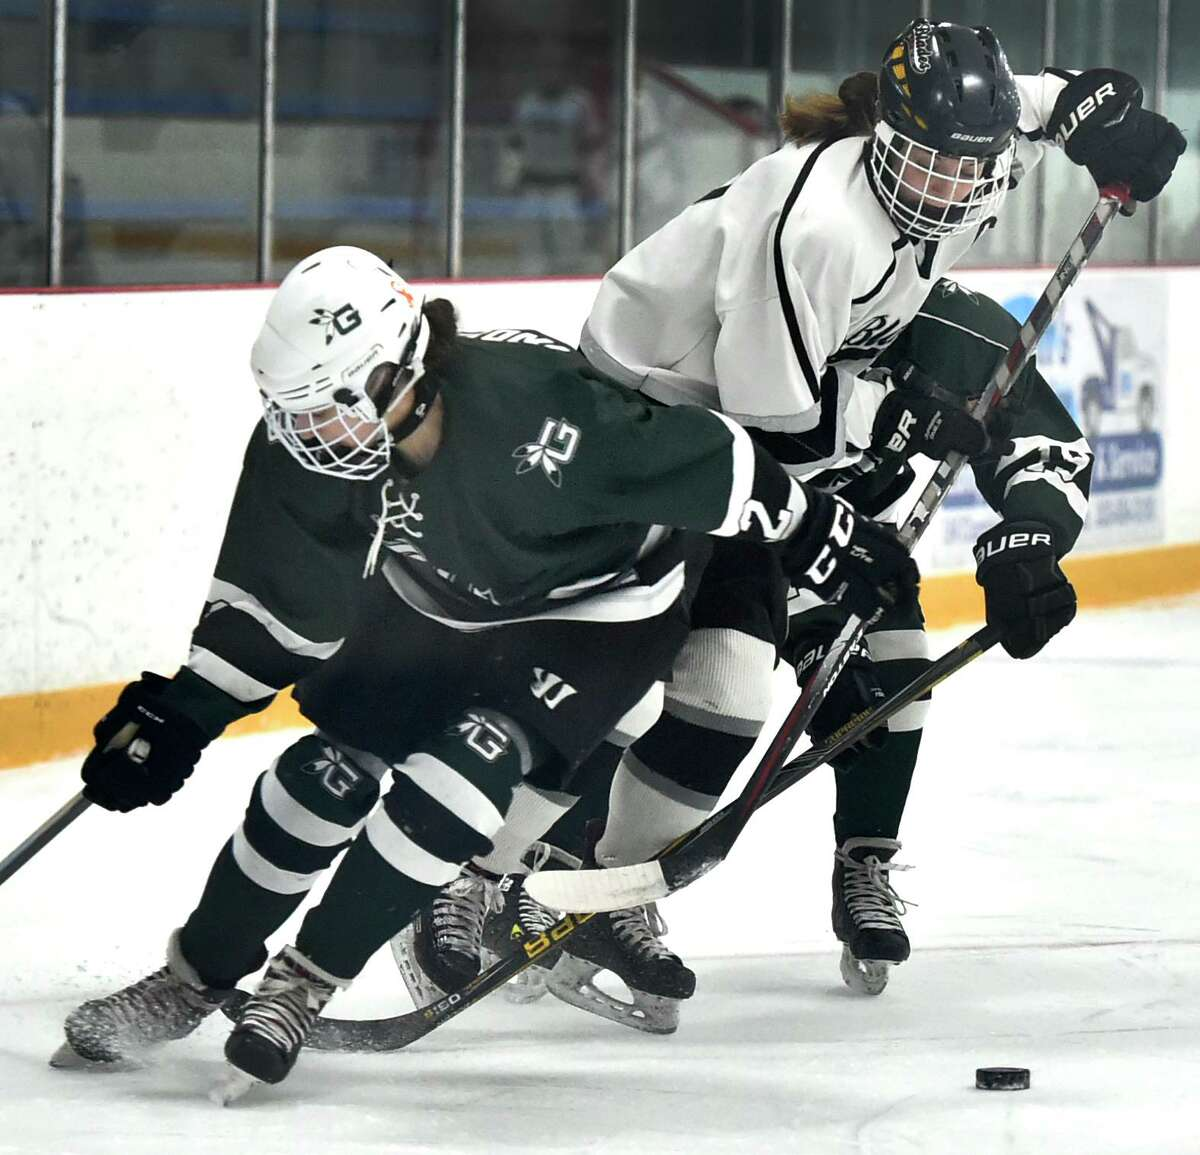 West Haven, Connecticut - February 29, 2020: Tess Csejka of Amity/New Haven/ Cheshire Blades, center, tries to split Olivia Gill of Guilford,left, and teammate Megan Fernandes, right, as she chases the puck the during first period of the SCC 2020 Girls Ice Hockey Championship Saturday afternoon at Bennett Rink in West Haven.